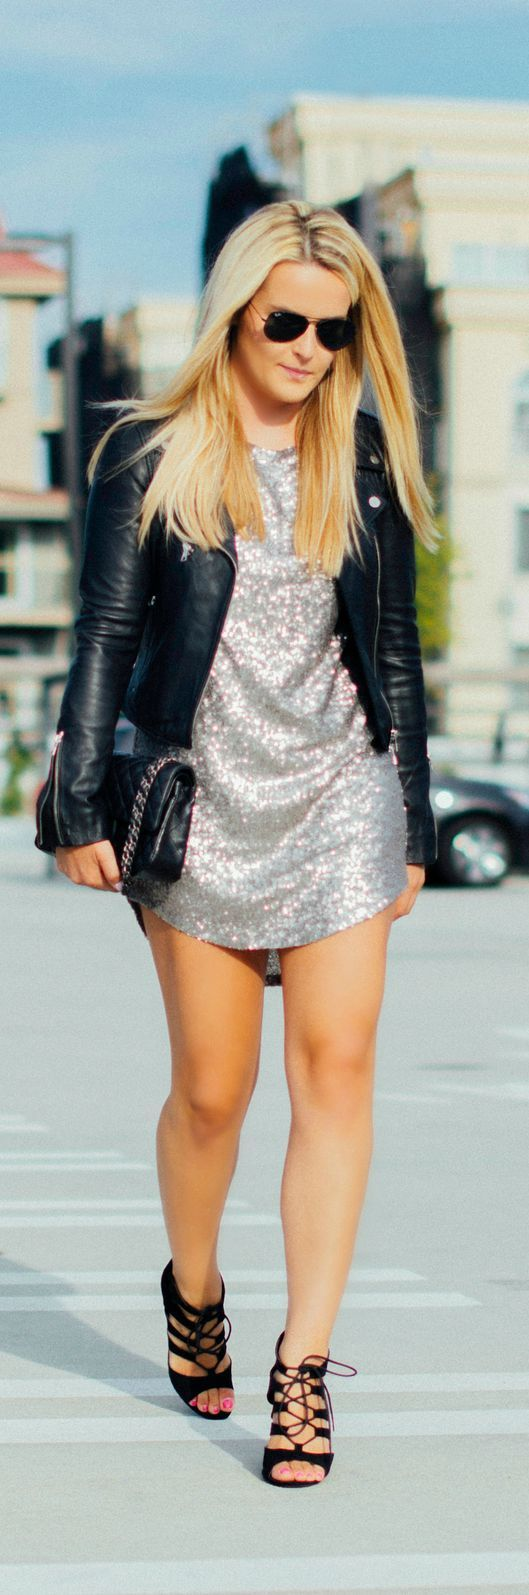 Silver sequins short dress with a black leather jacket. Sandals heels black leather. Fashion Trend.